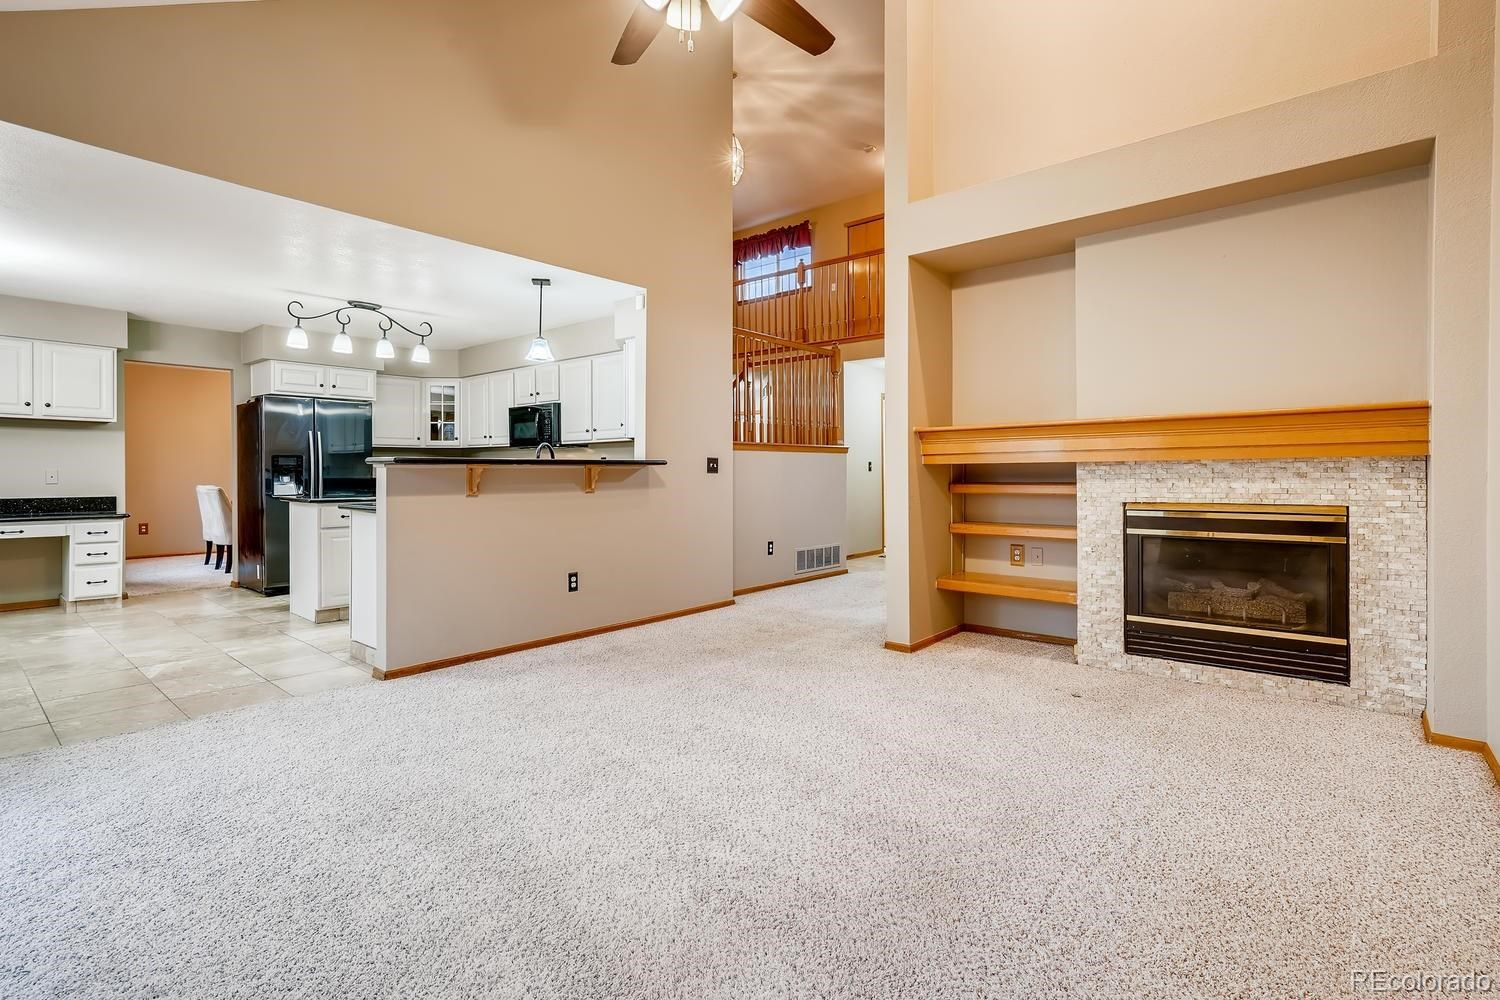 MLS# 6431155 - 13 - 6773 W 98th Circle, Westminster, CO 80021